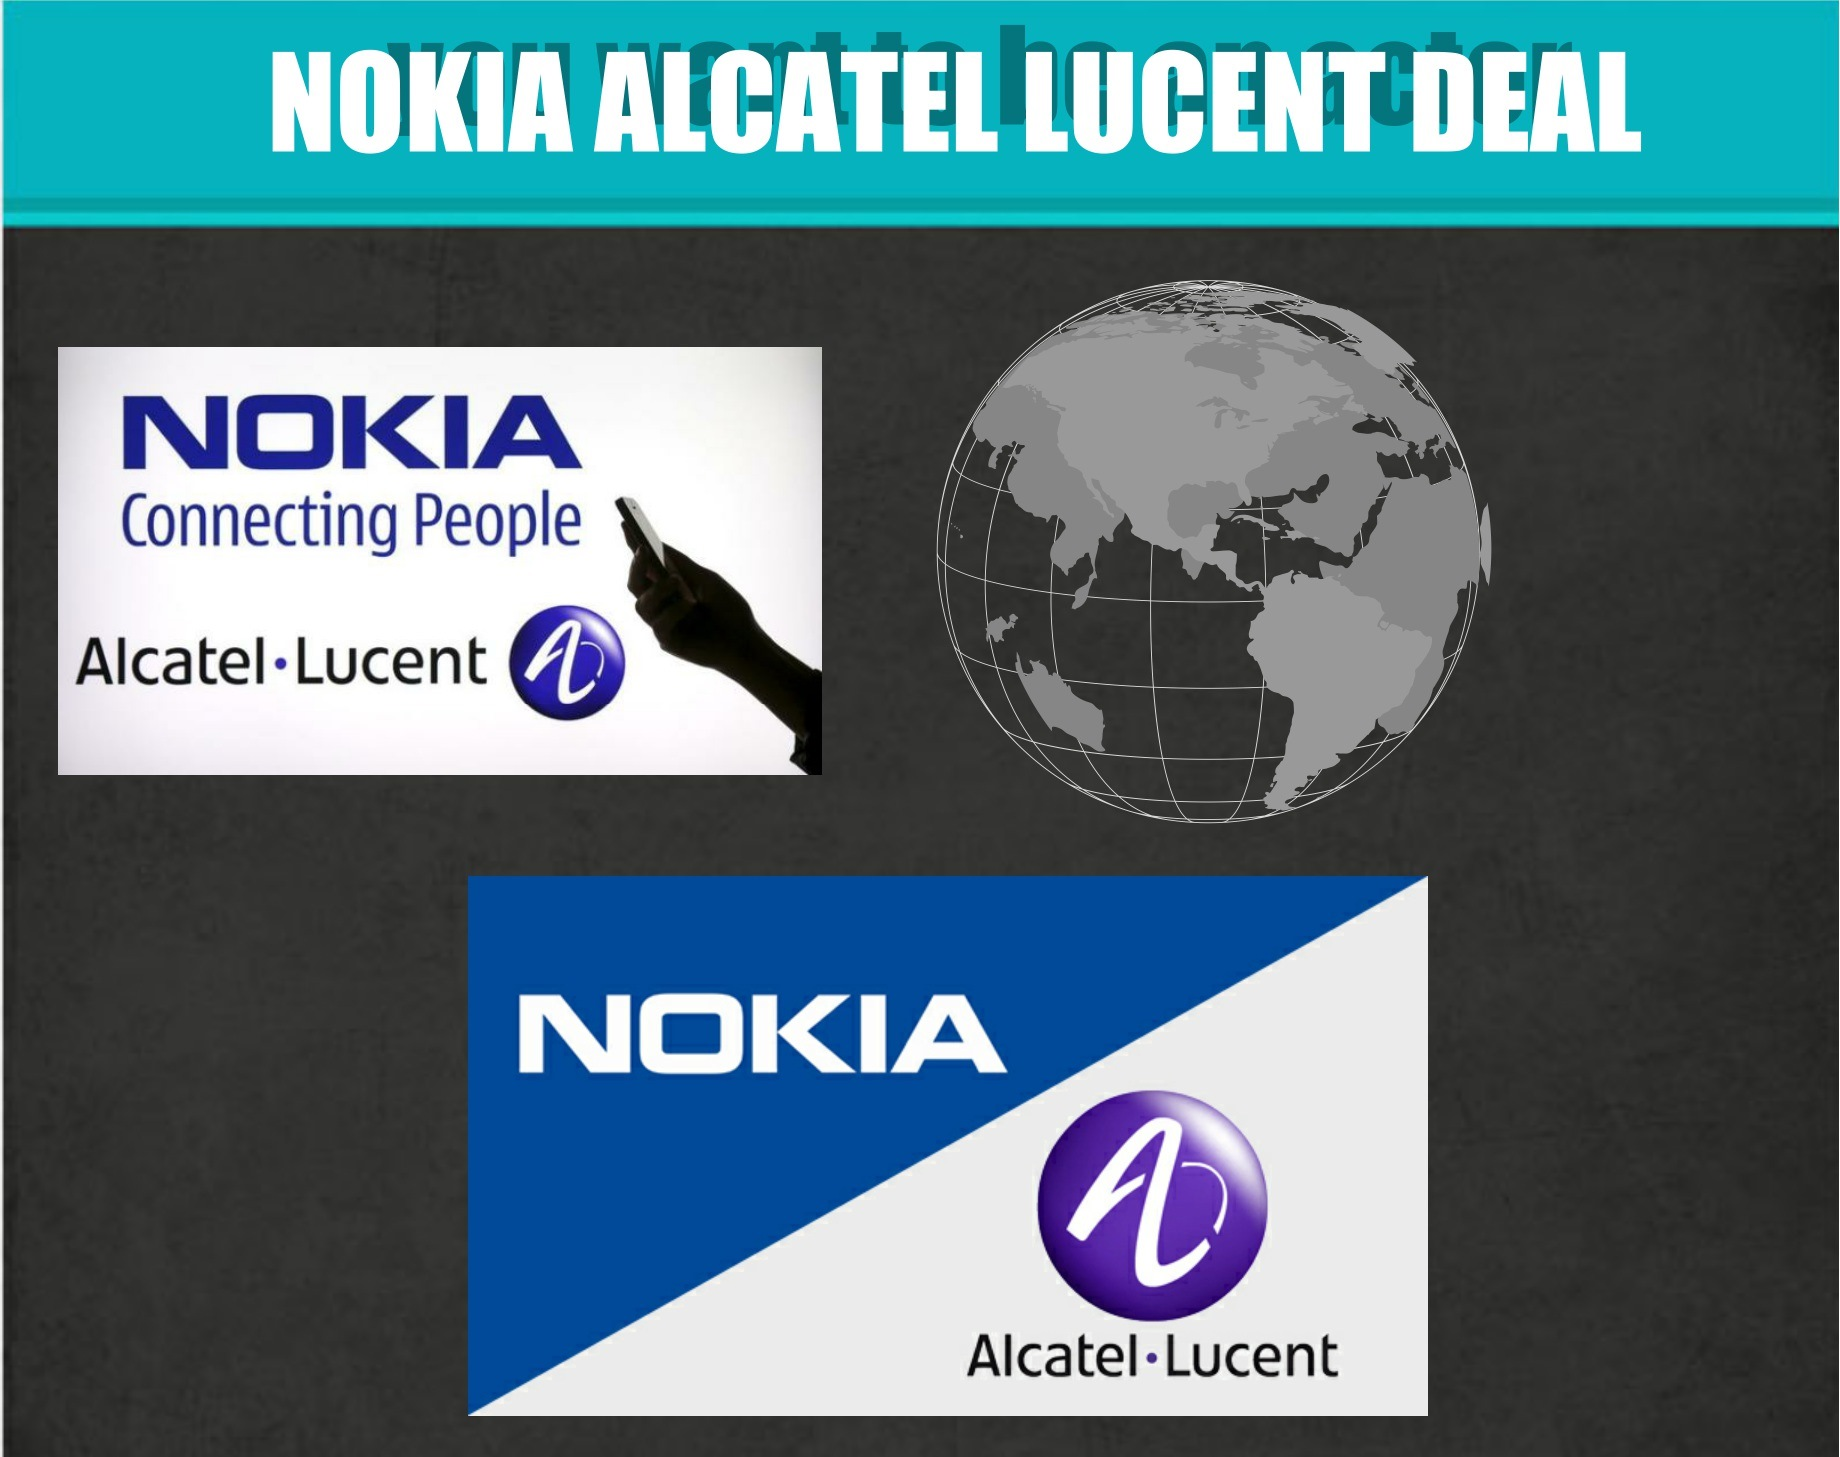 lucent merger Of lucent in terms of revenues and employees when the merger that created alcatel-lucent took place lucent became a wholly owned subsidiary of alcatel although lucent ceo patricia russo was named the first ceo of alcatel-lucent, her office was located at alcatel headquarters, 54 rue la boétie in paris.